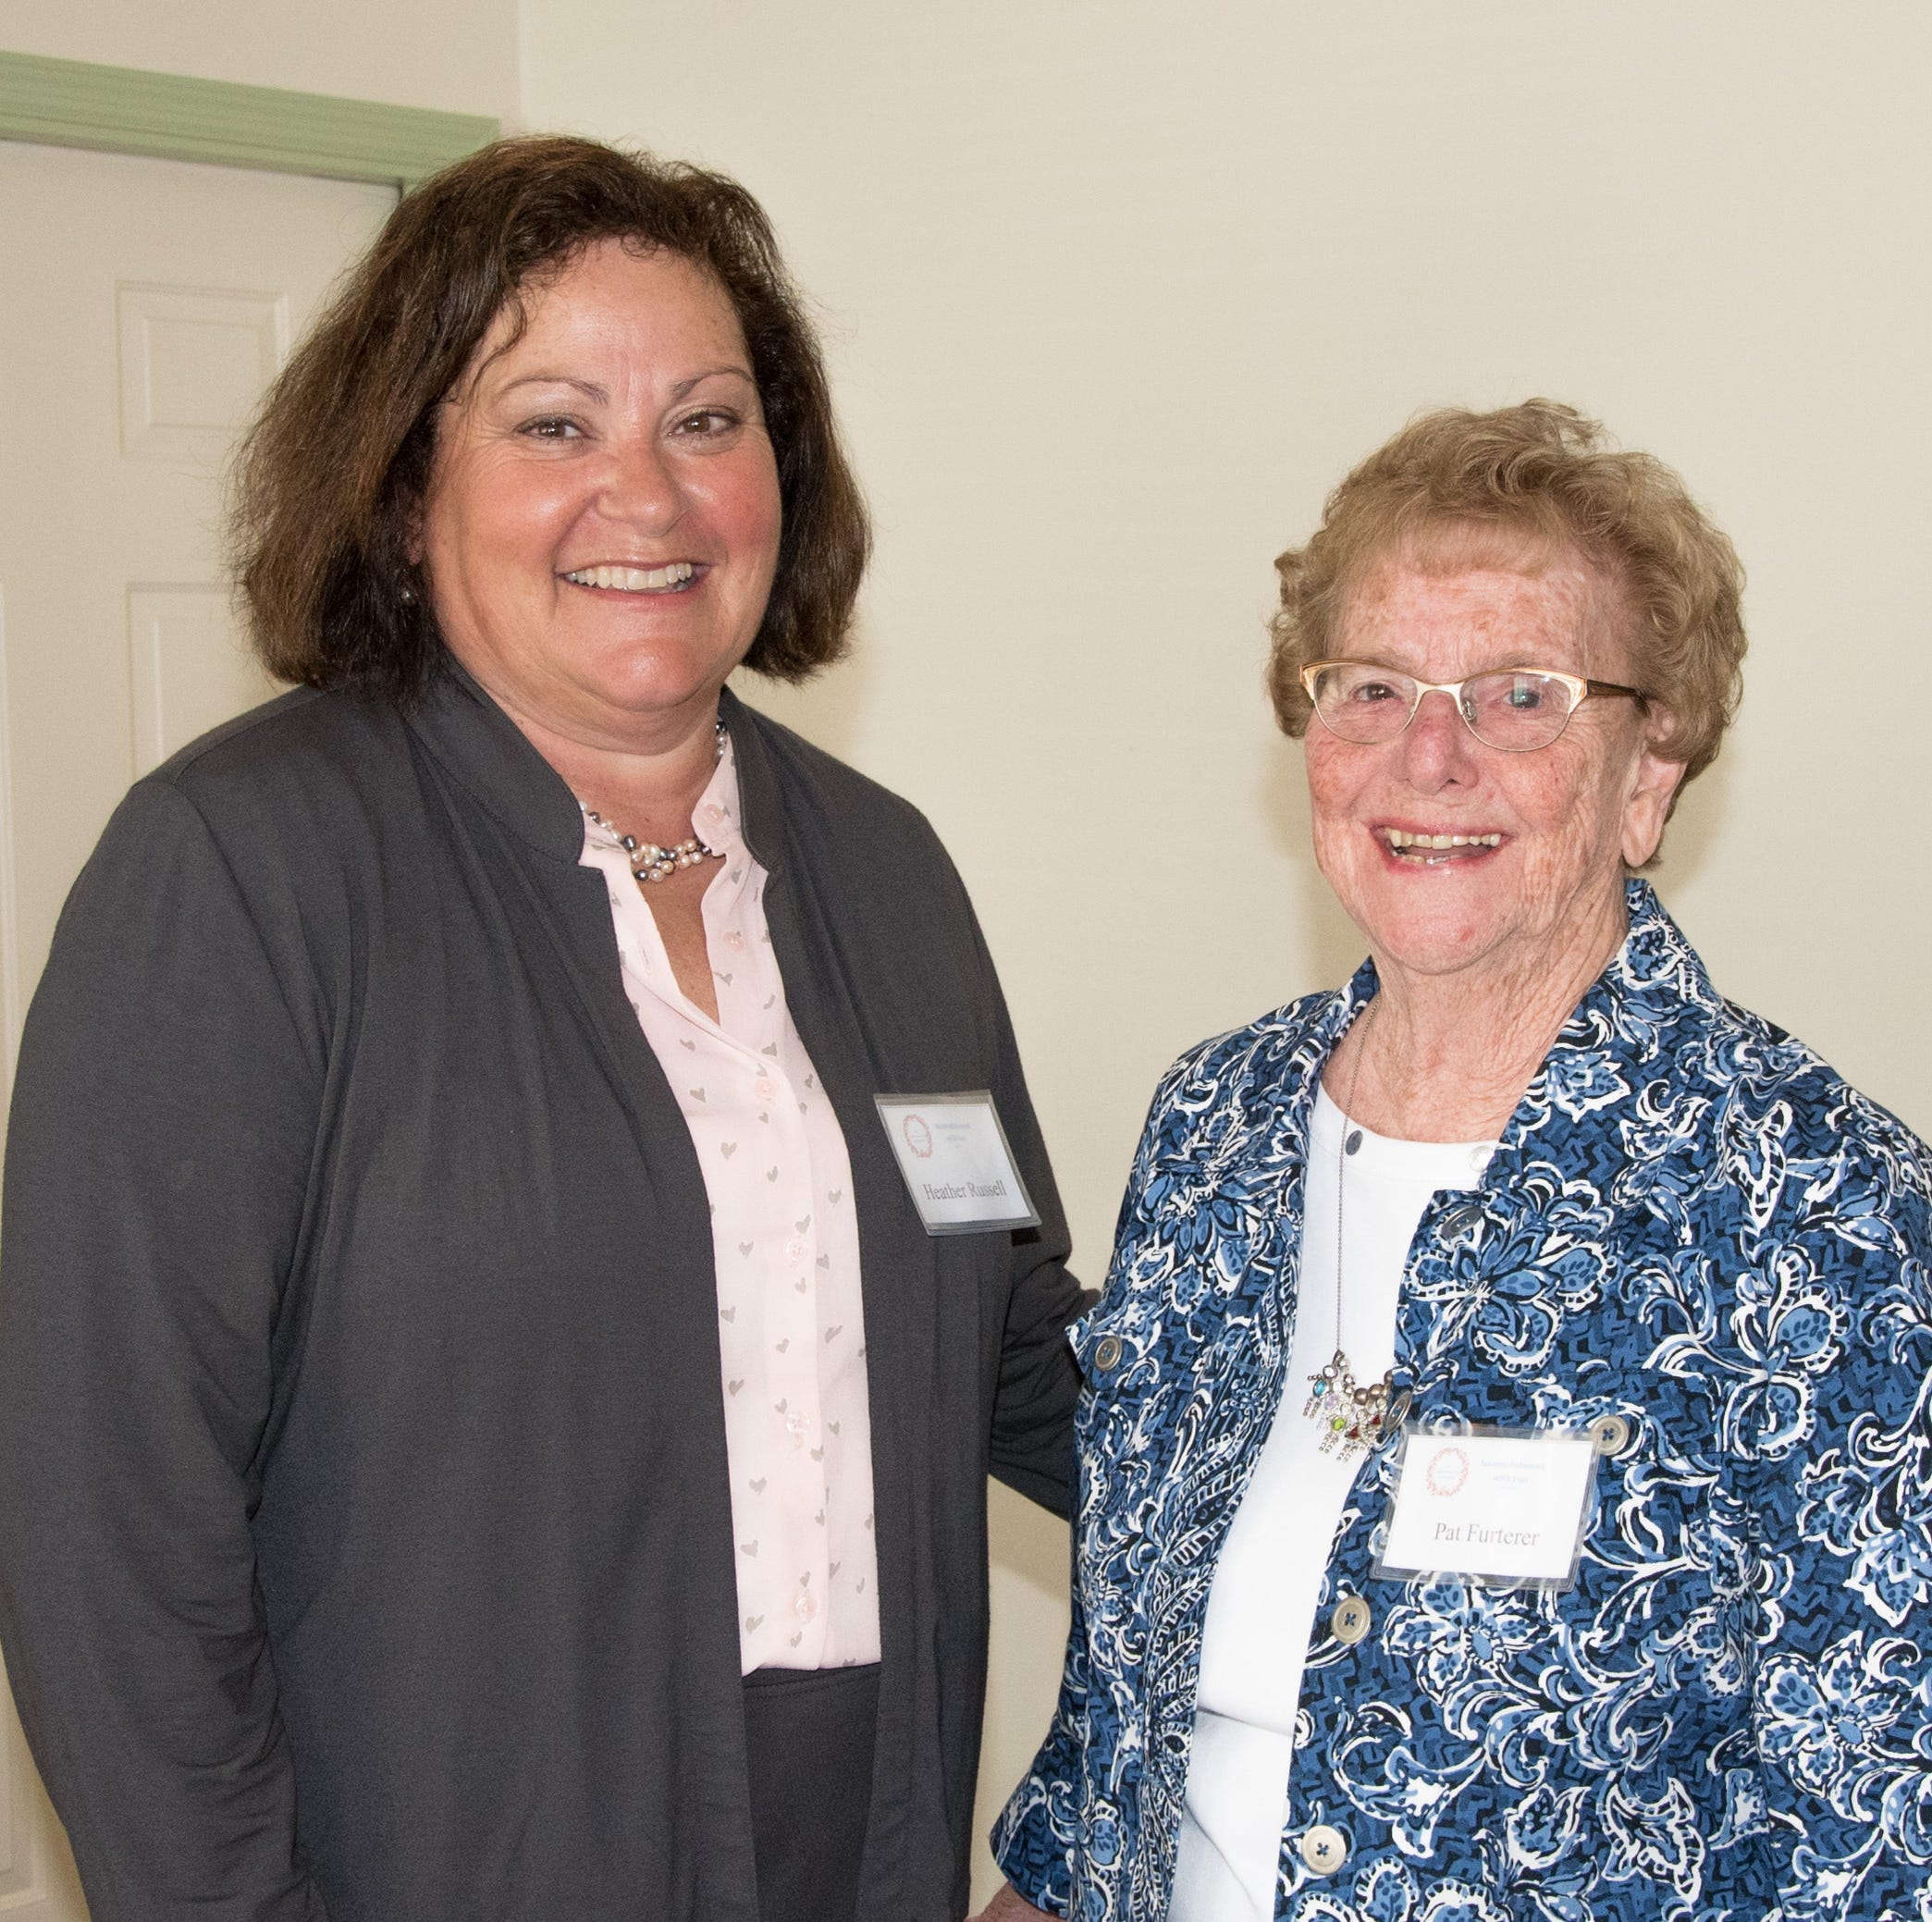 Judge Heather S. Russell spoke at the recent Loveland Woman's Club meeting. She is shown here with VP Pat Furterer (right).